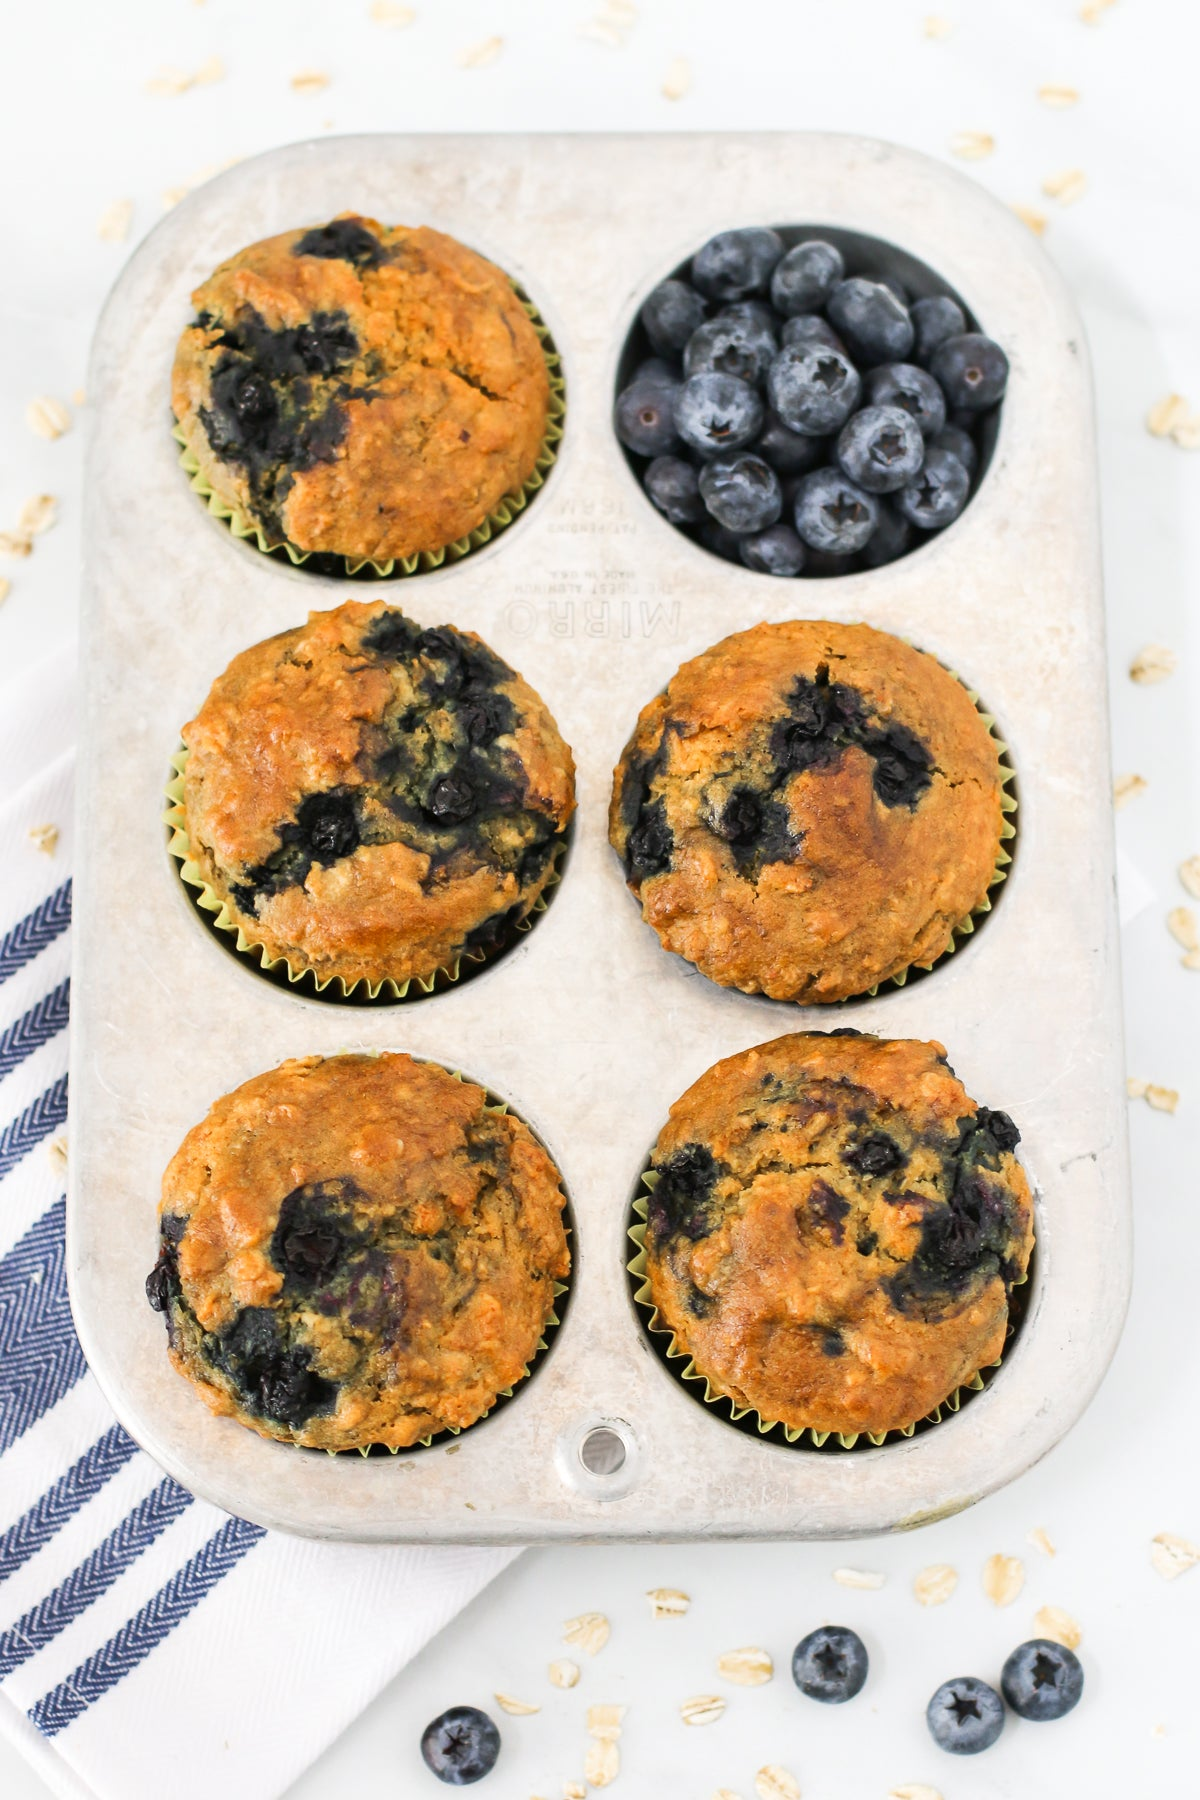 Hearty oatmeal muffins, bursting with sweet blueberries